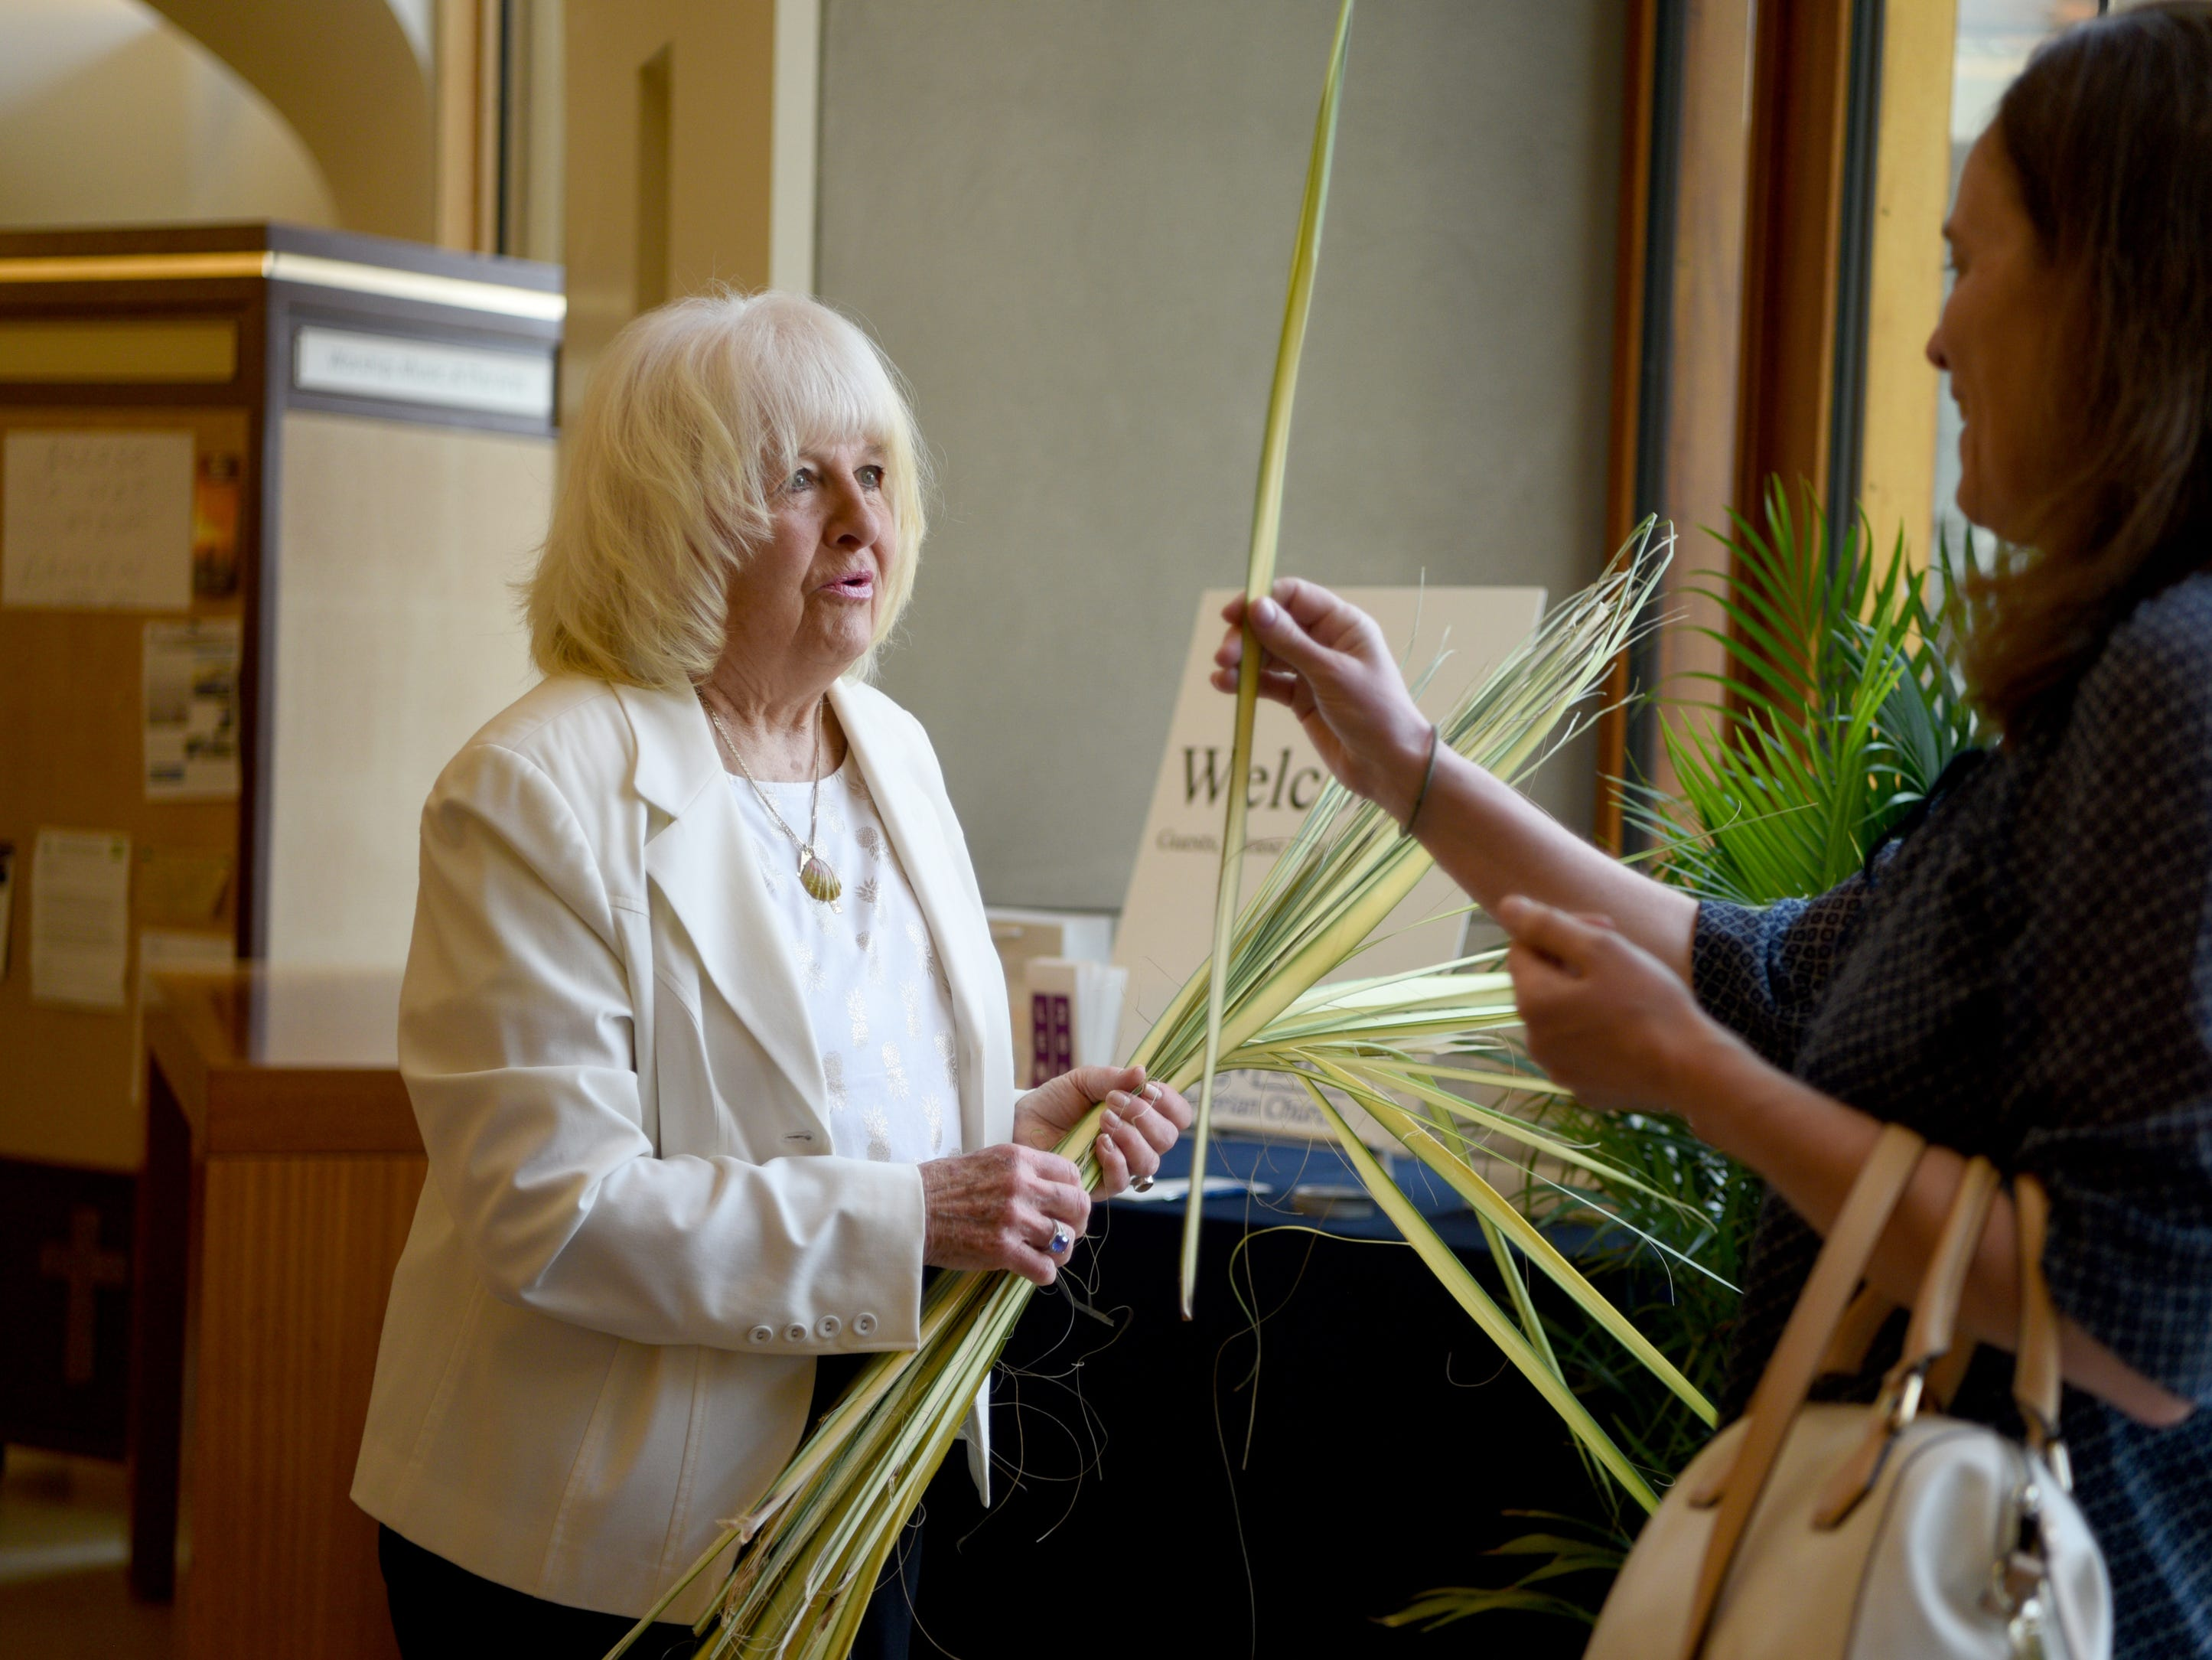 West Side Presbyterian Church in Ridgewood commemorated Palm Sunday on April 14, 2019 during services. Anita Jones hands out palms as people enter church.